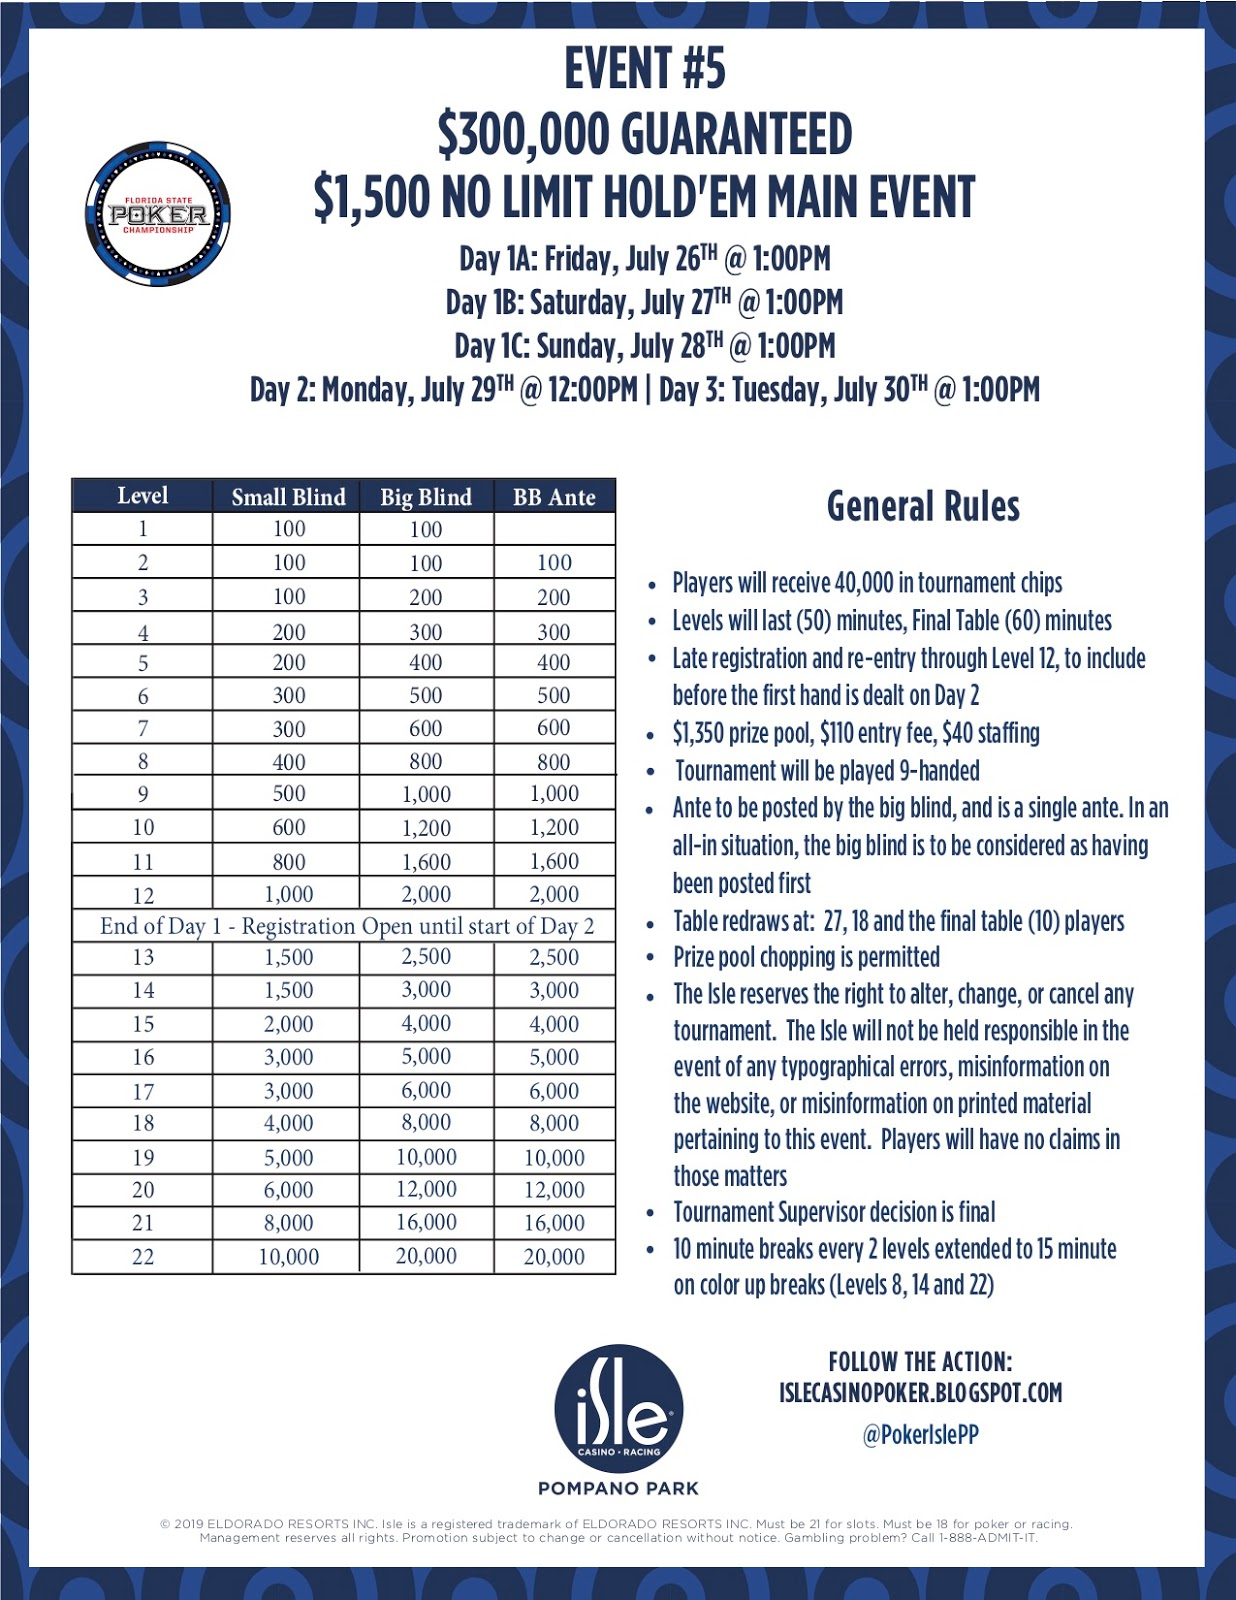 Isle Casino Poker : Saturday, July 27th: One Day In The